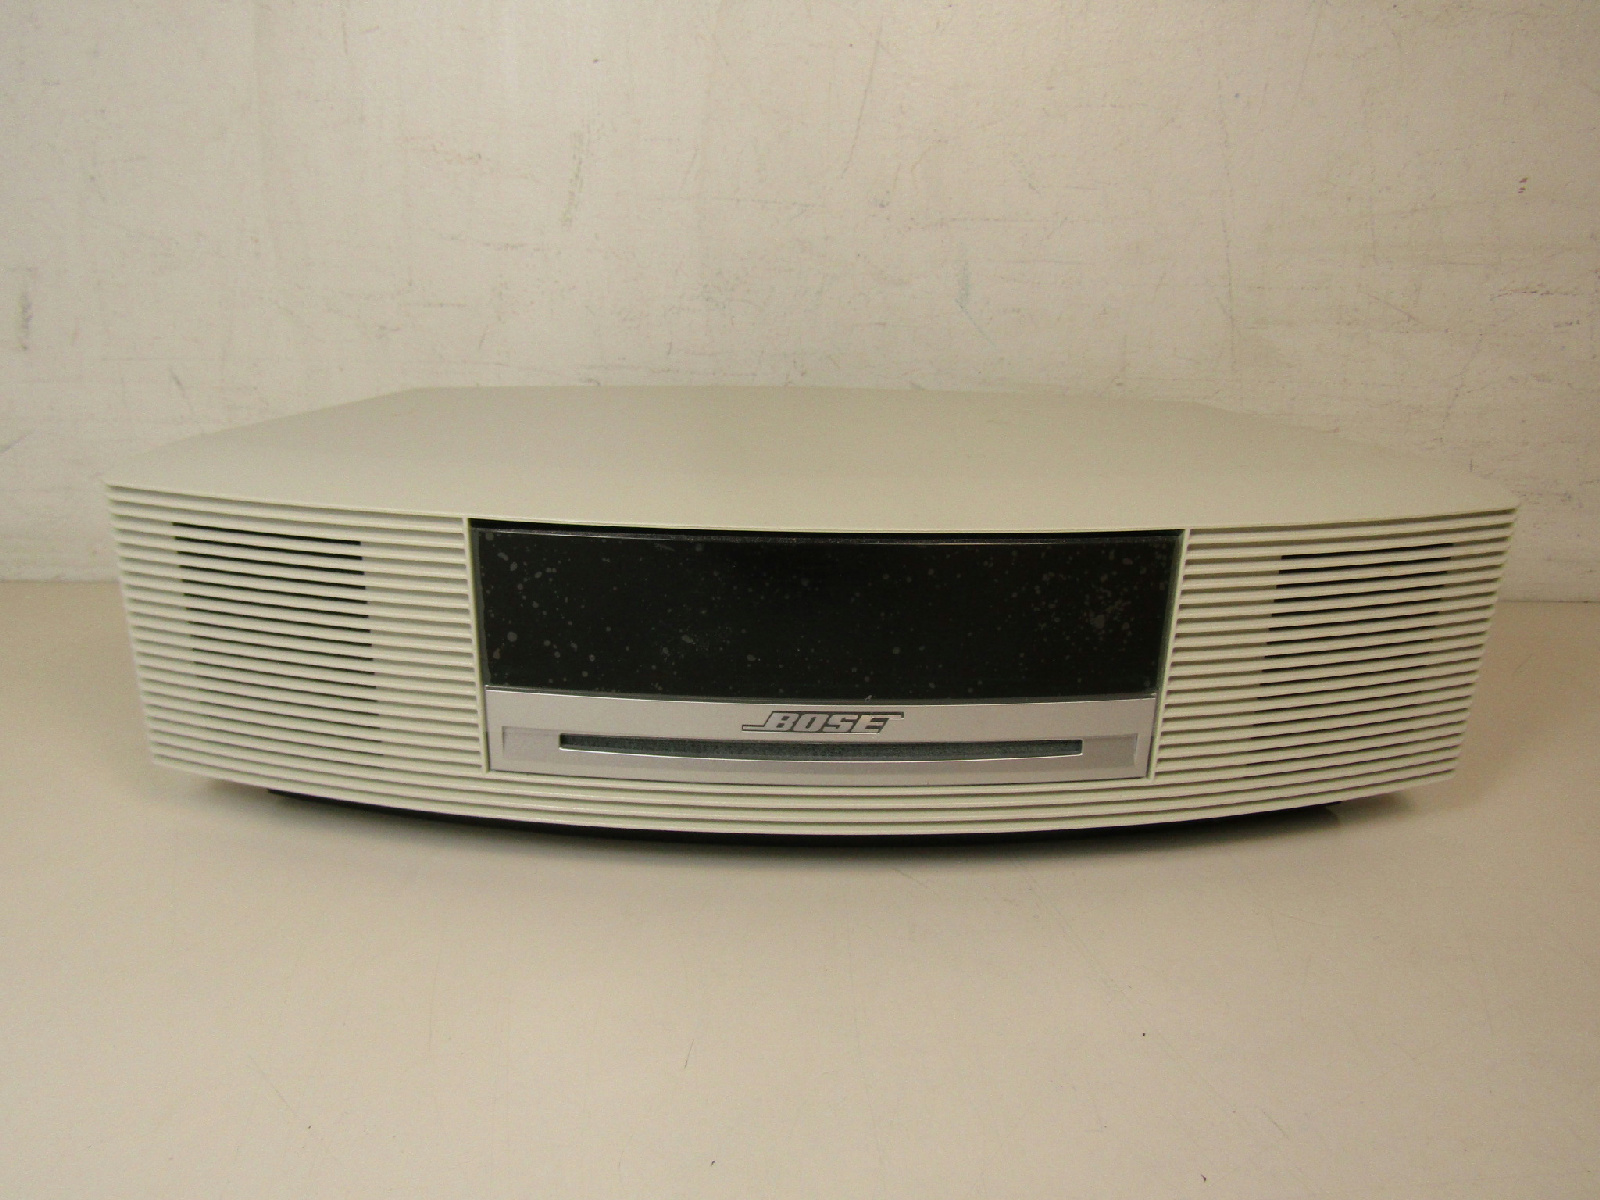 bose wave music system iii radio cd player white w remote. Black Bedroom Furniture Sets. Home Design Ideas